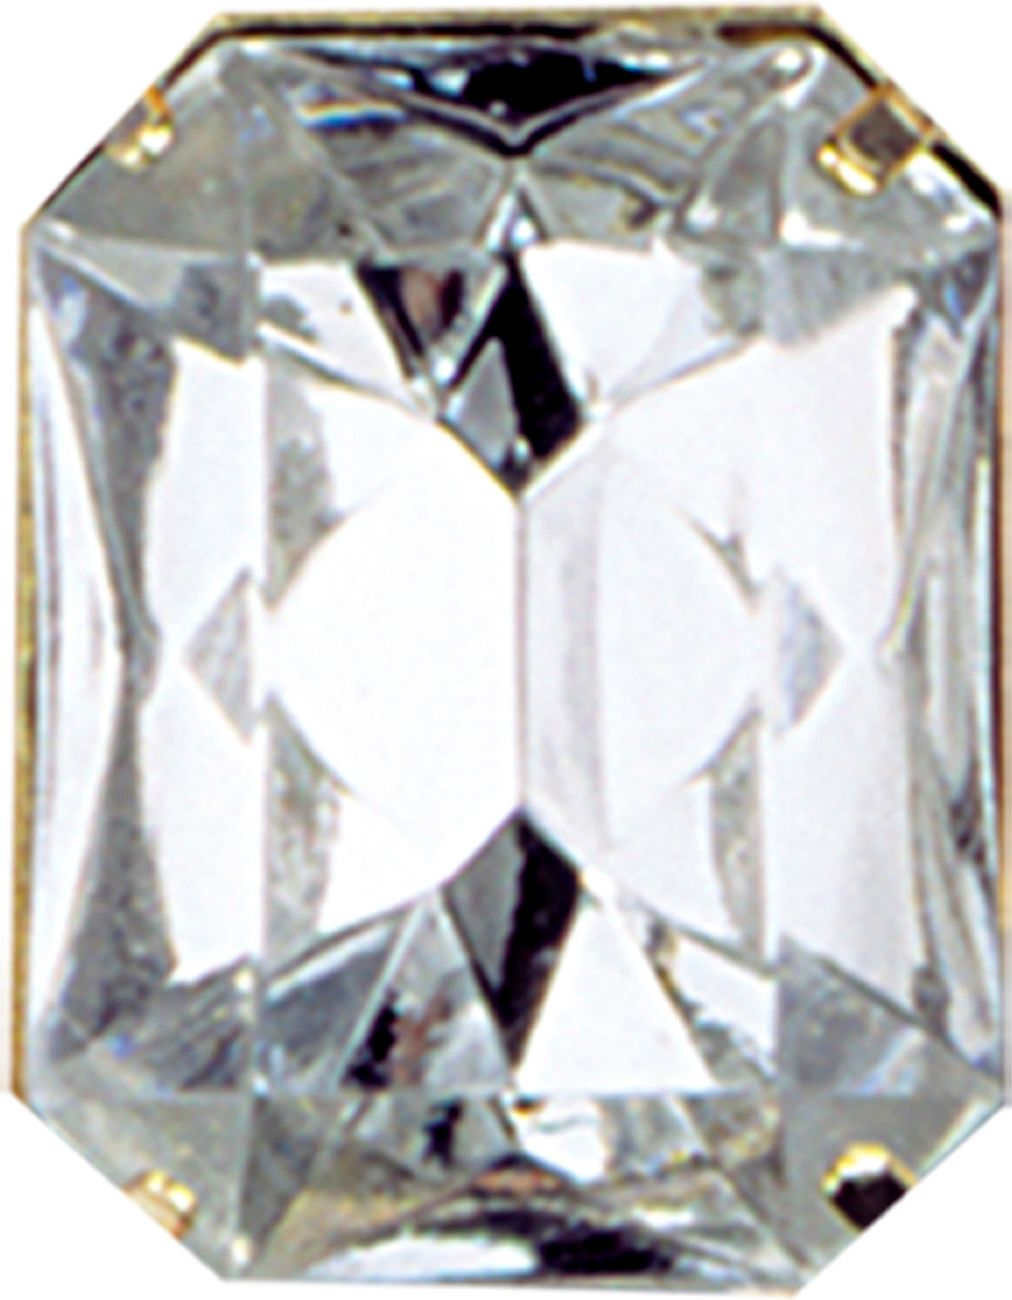 Grote diamant ring gangster